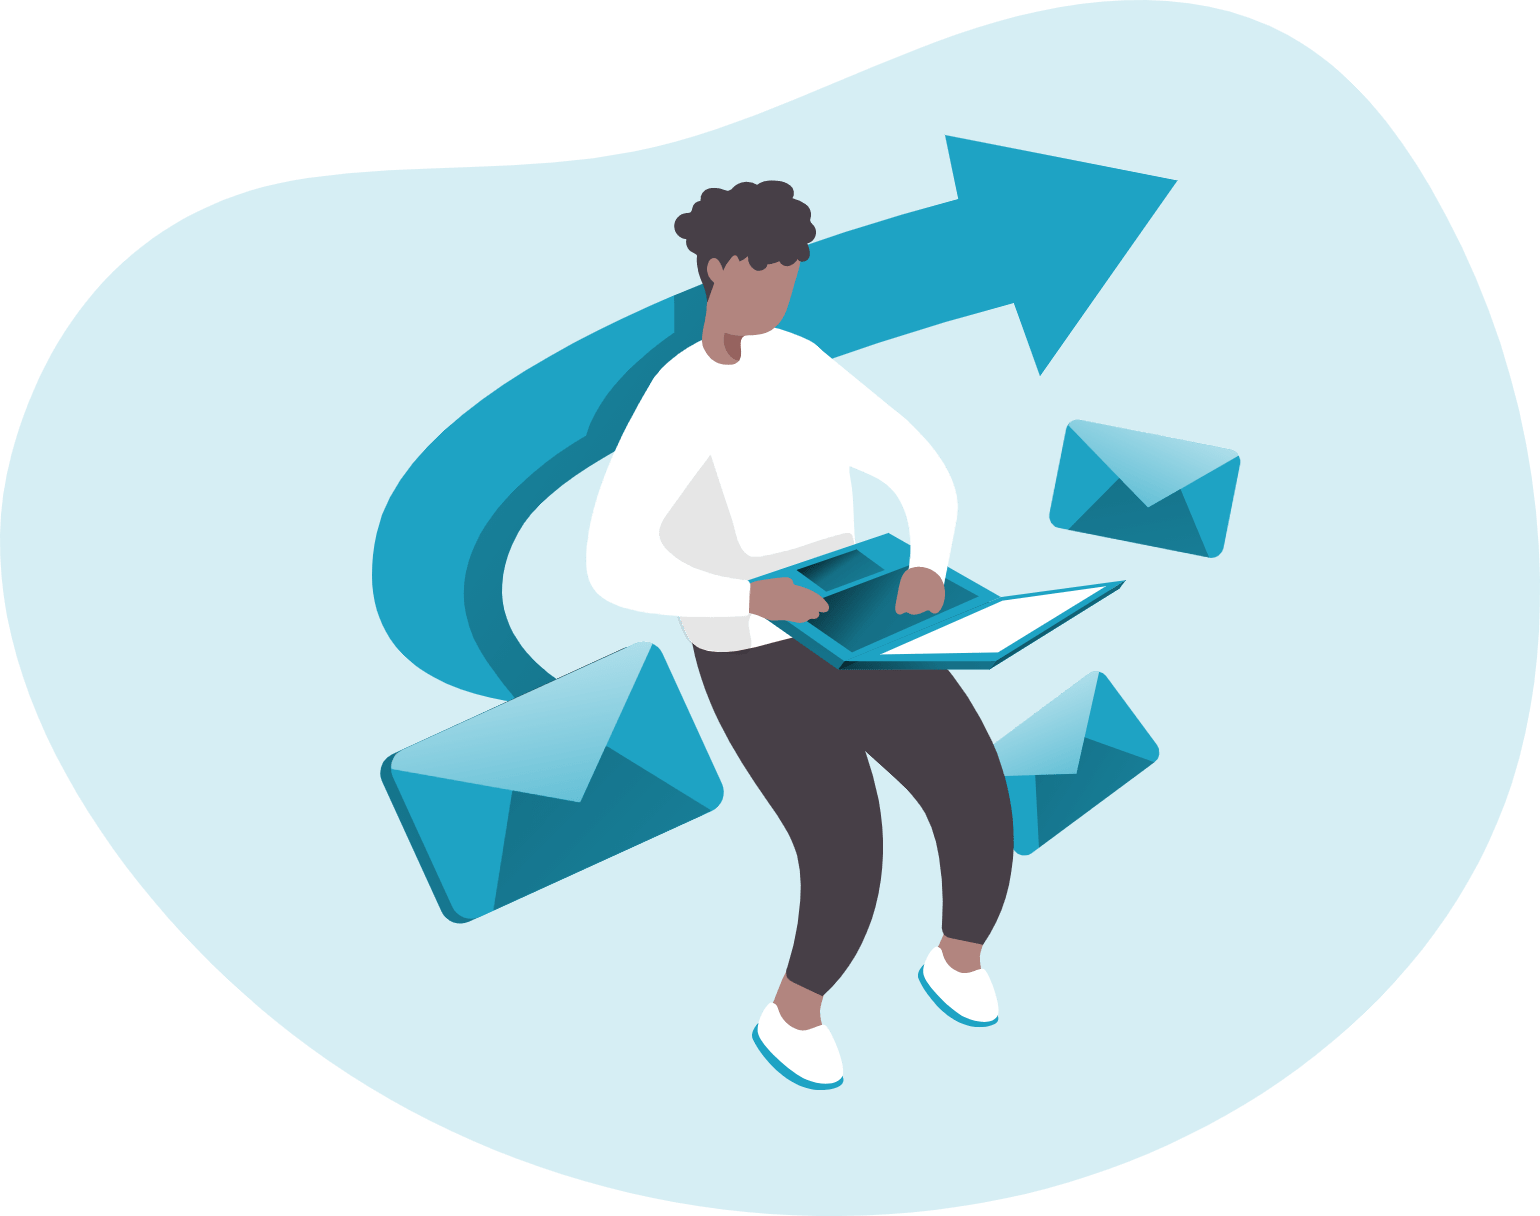 Drawing sending emails